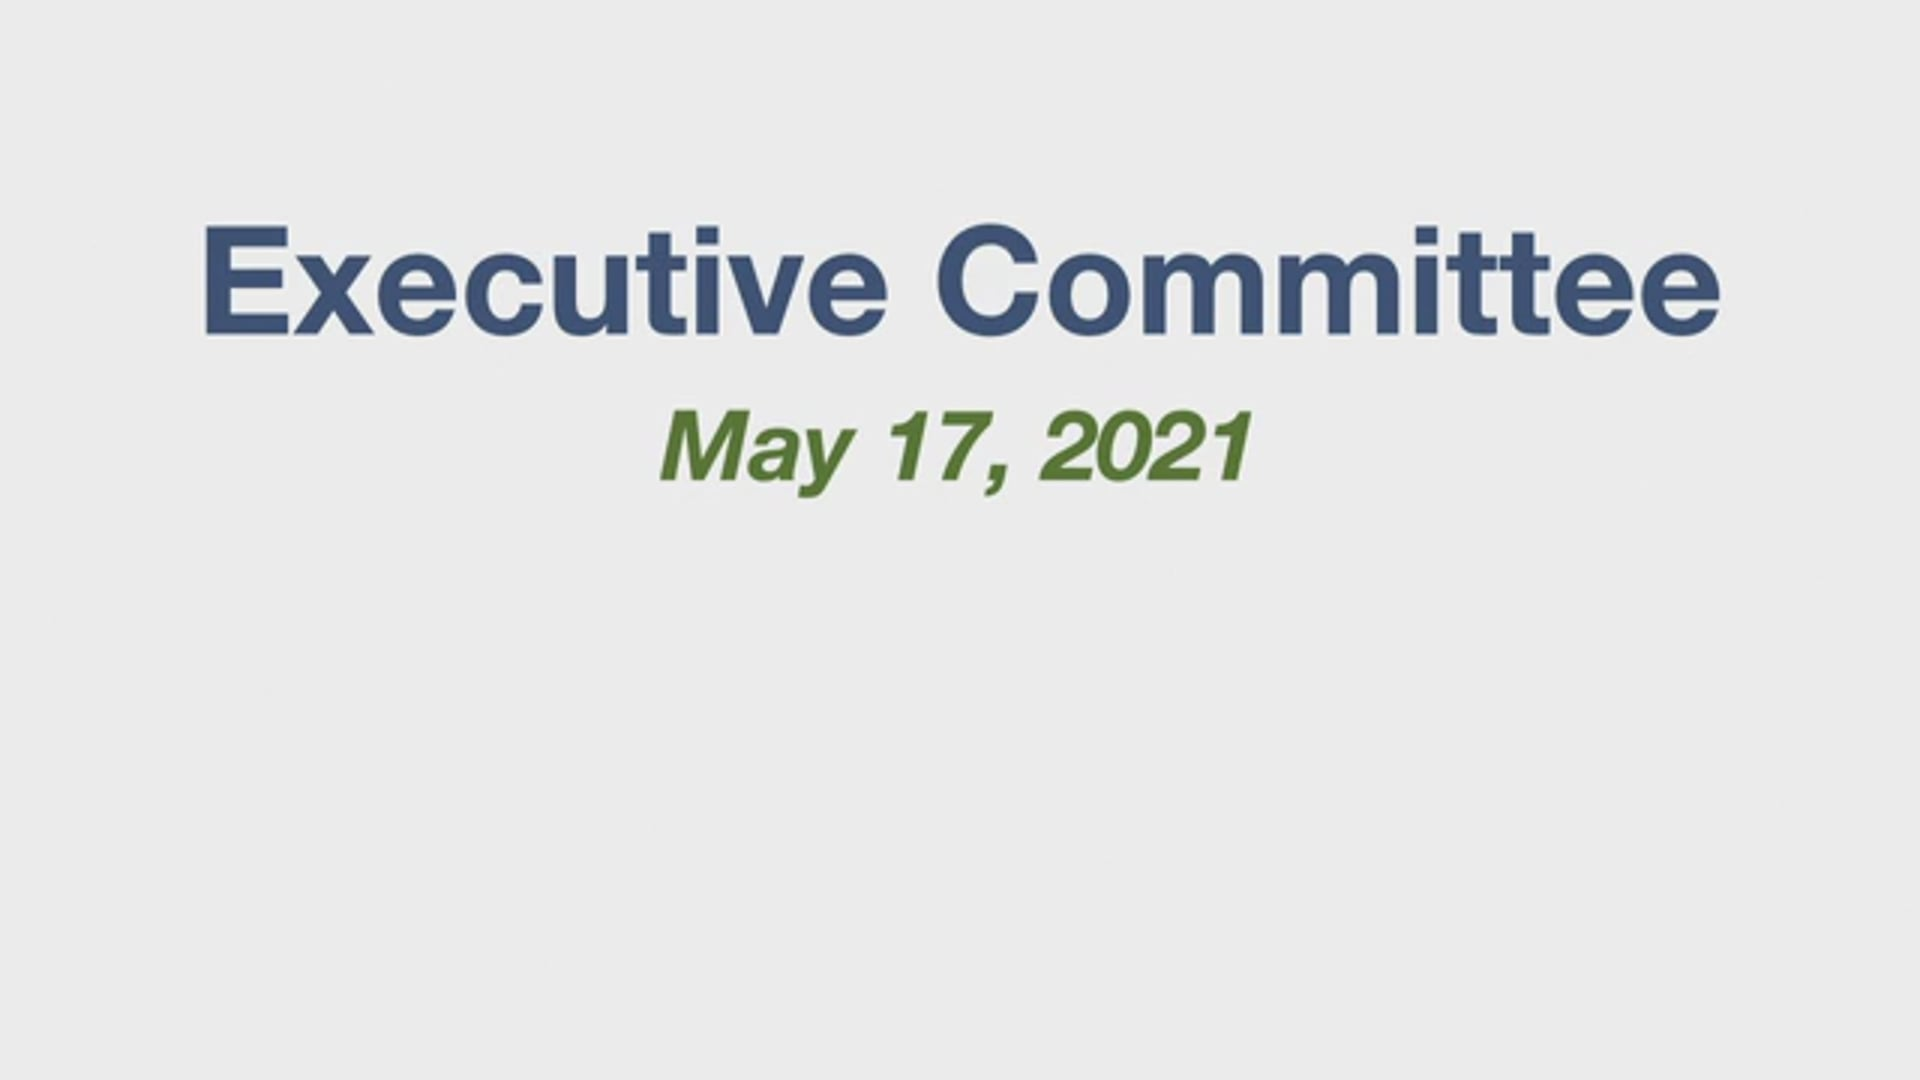 May 17, 2021 Executive Committee